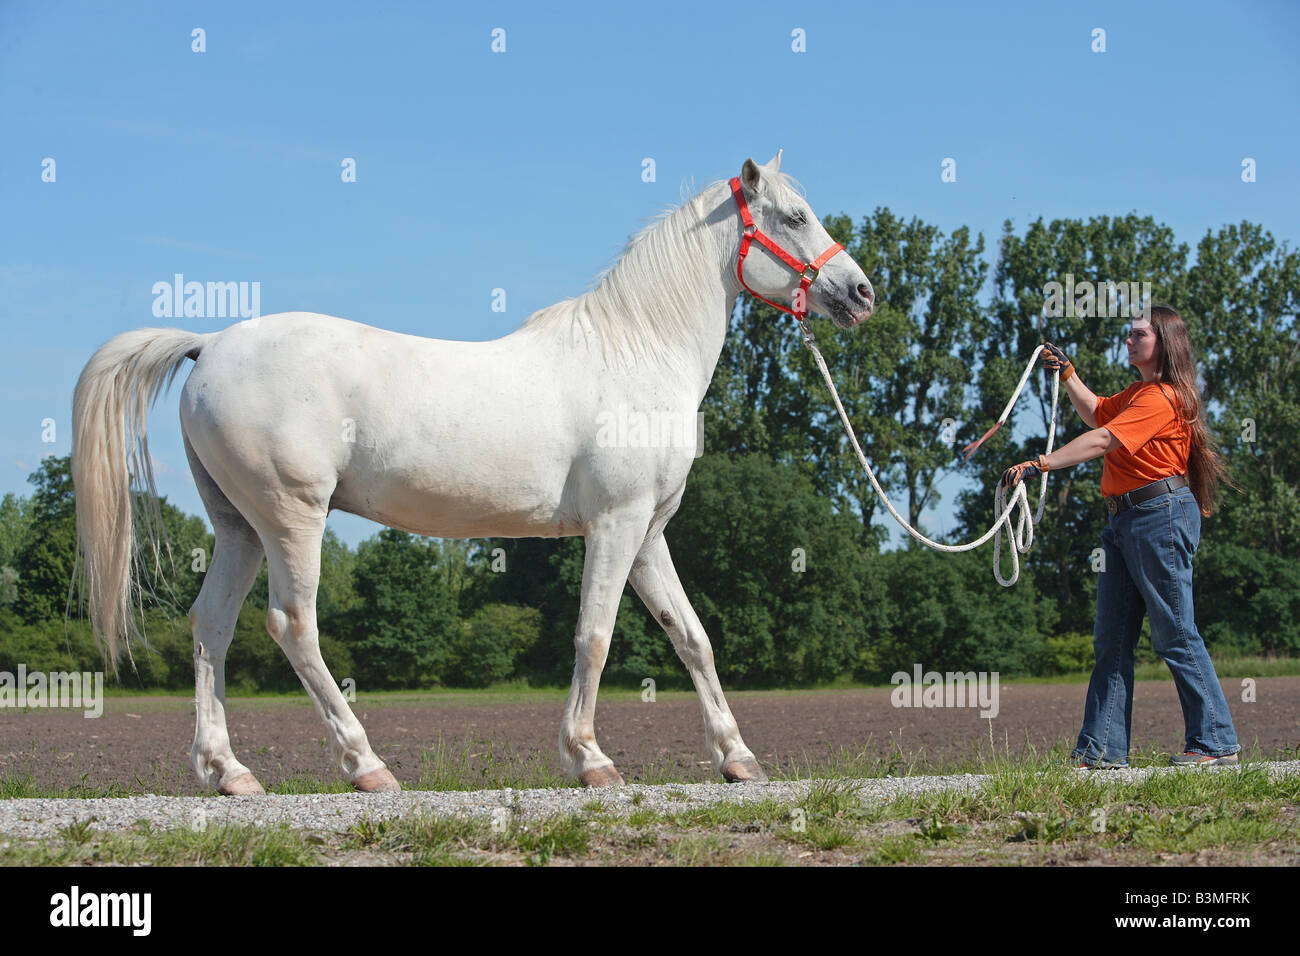 Tiger Horse with woman - rein-back Stock Photo